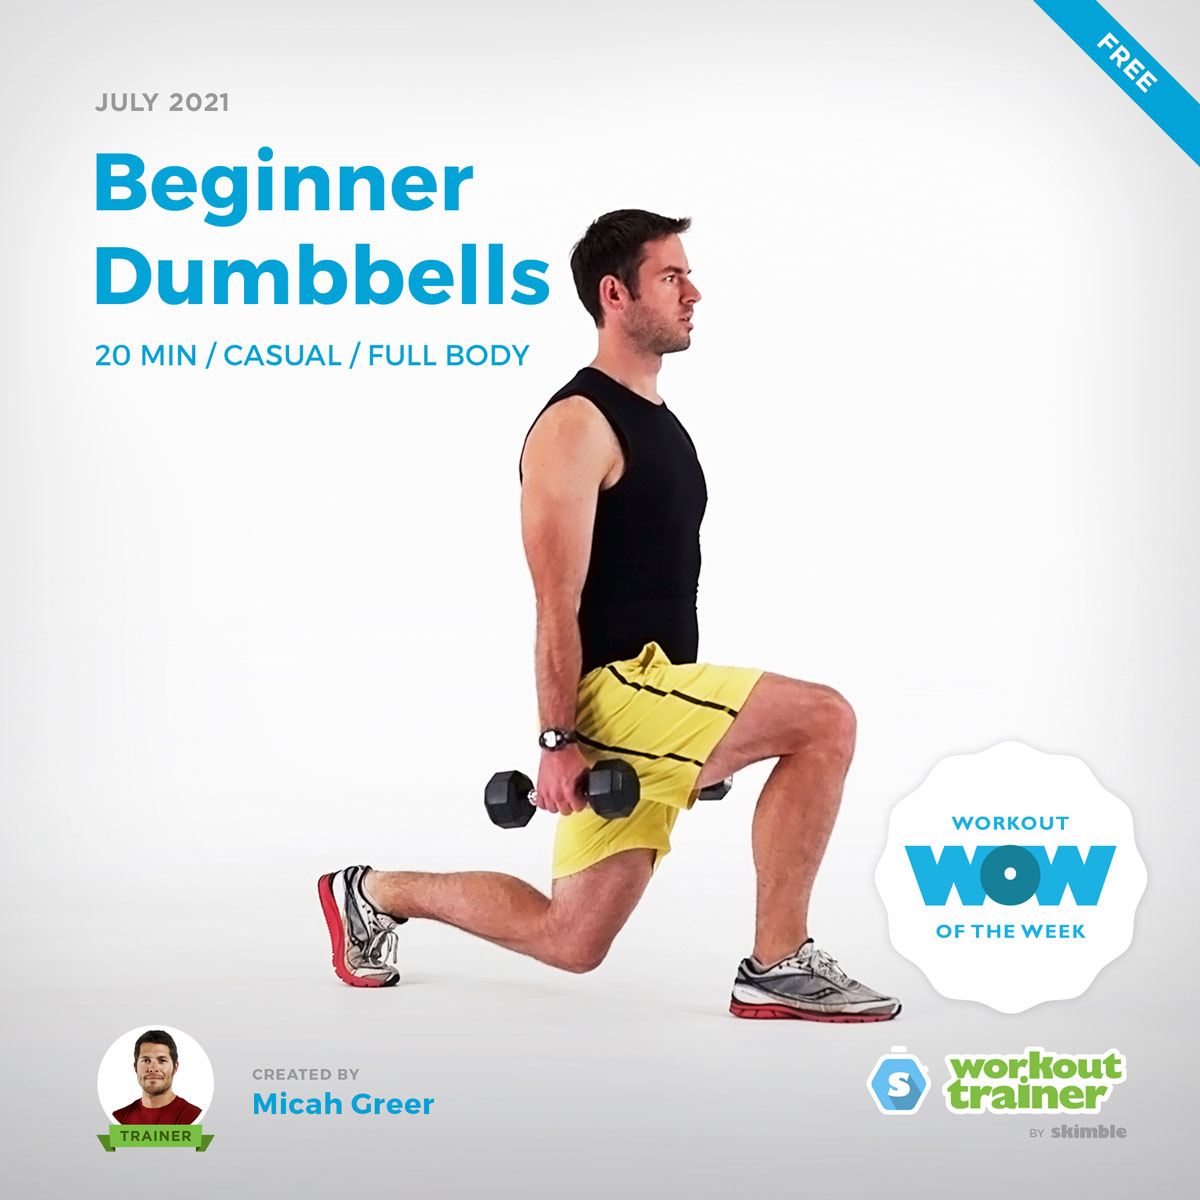 Male Personal Trainer doing beginner Dumbbell Lunges with light weights